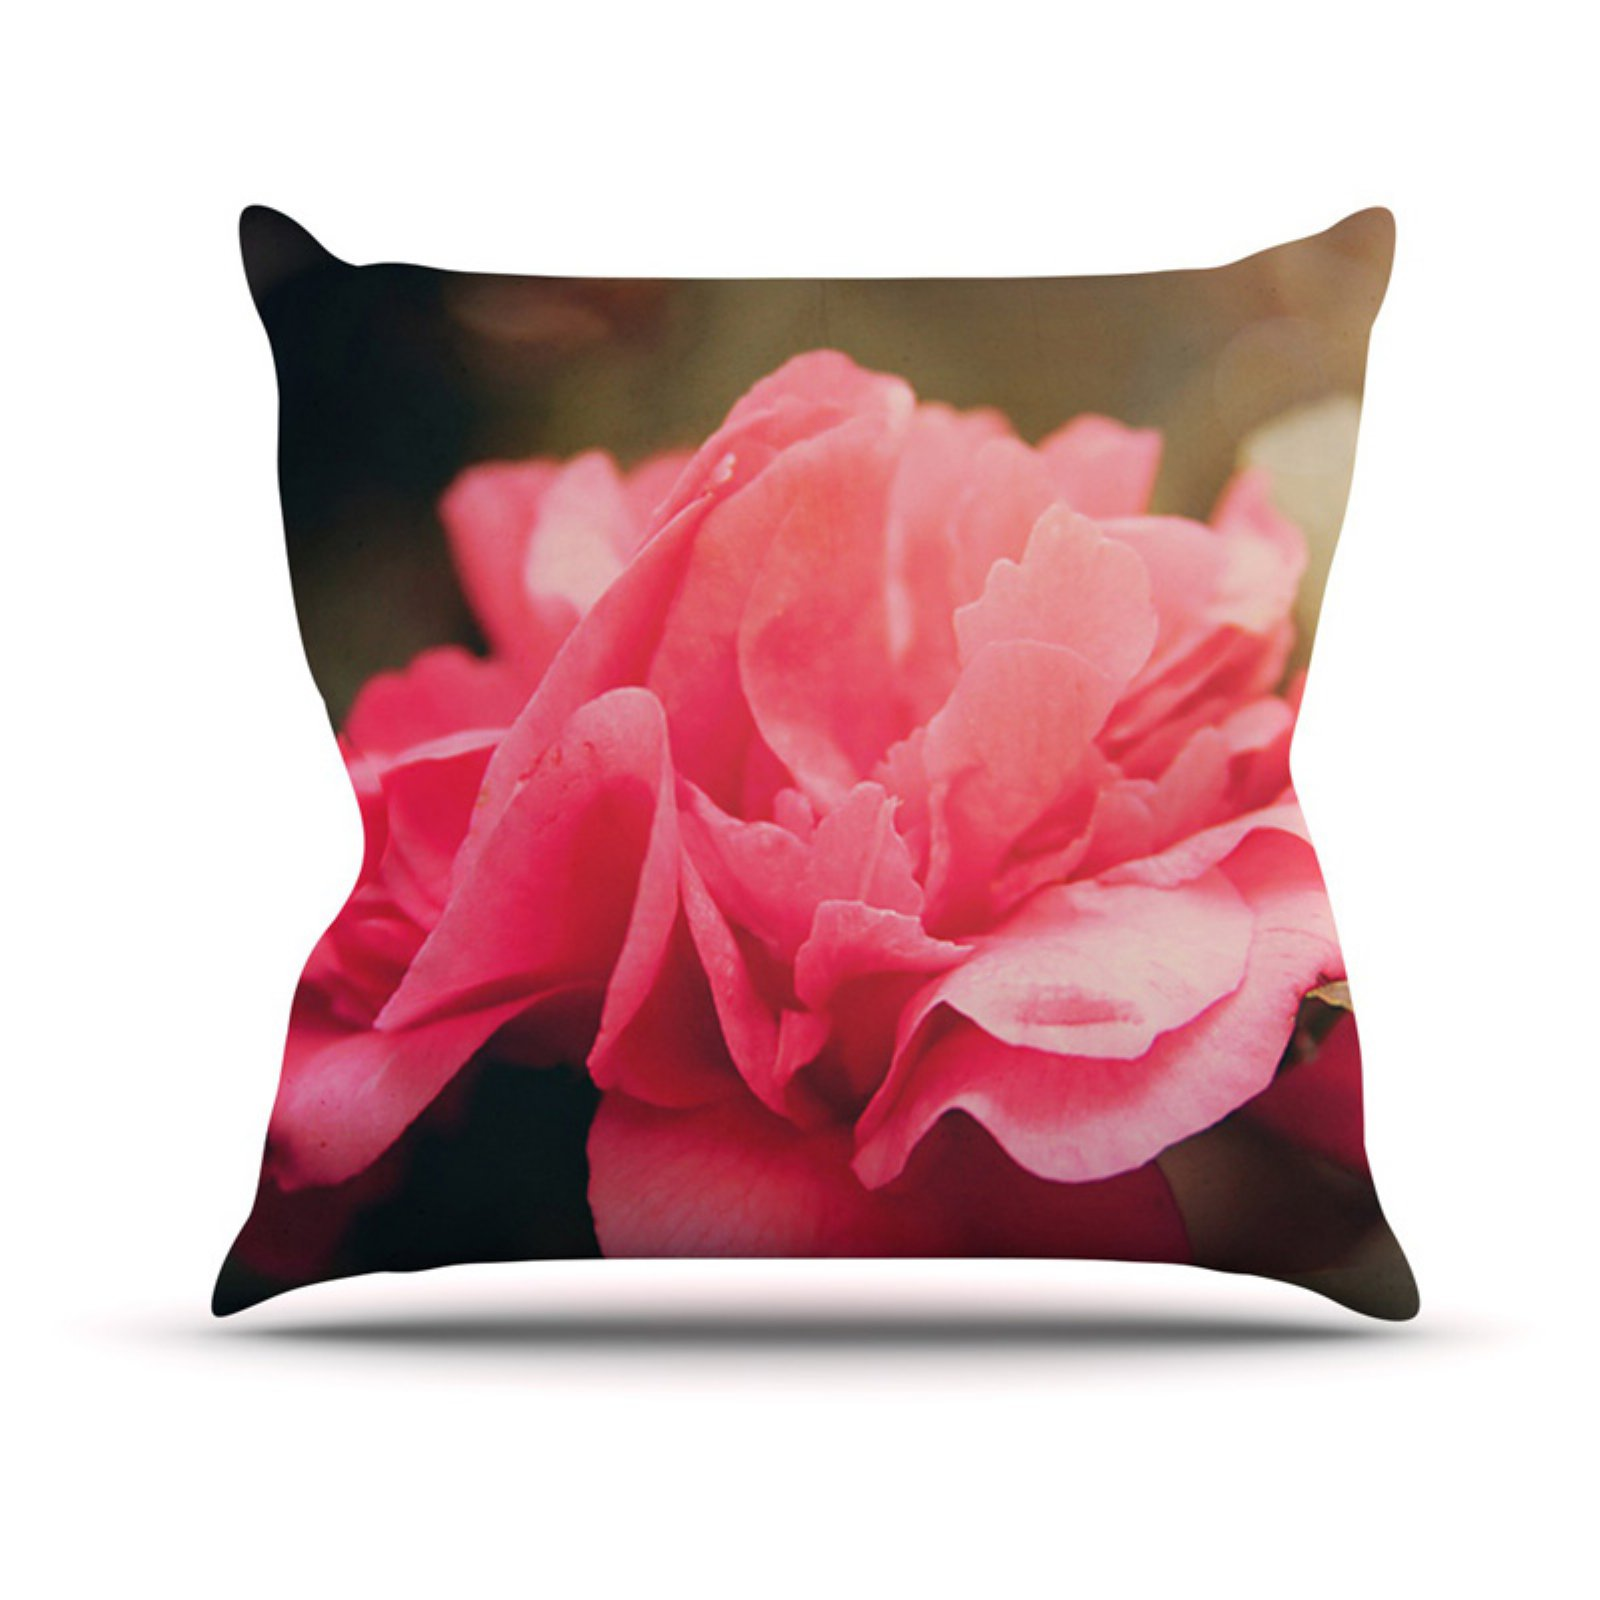 Kess InHouse Angie Turner Camelia Pink Flower Indoor/Outdoor Throw Pillow